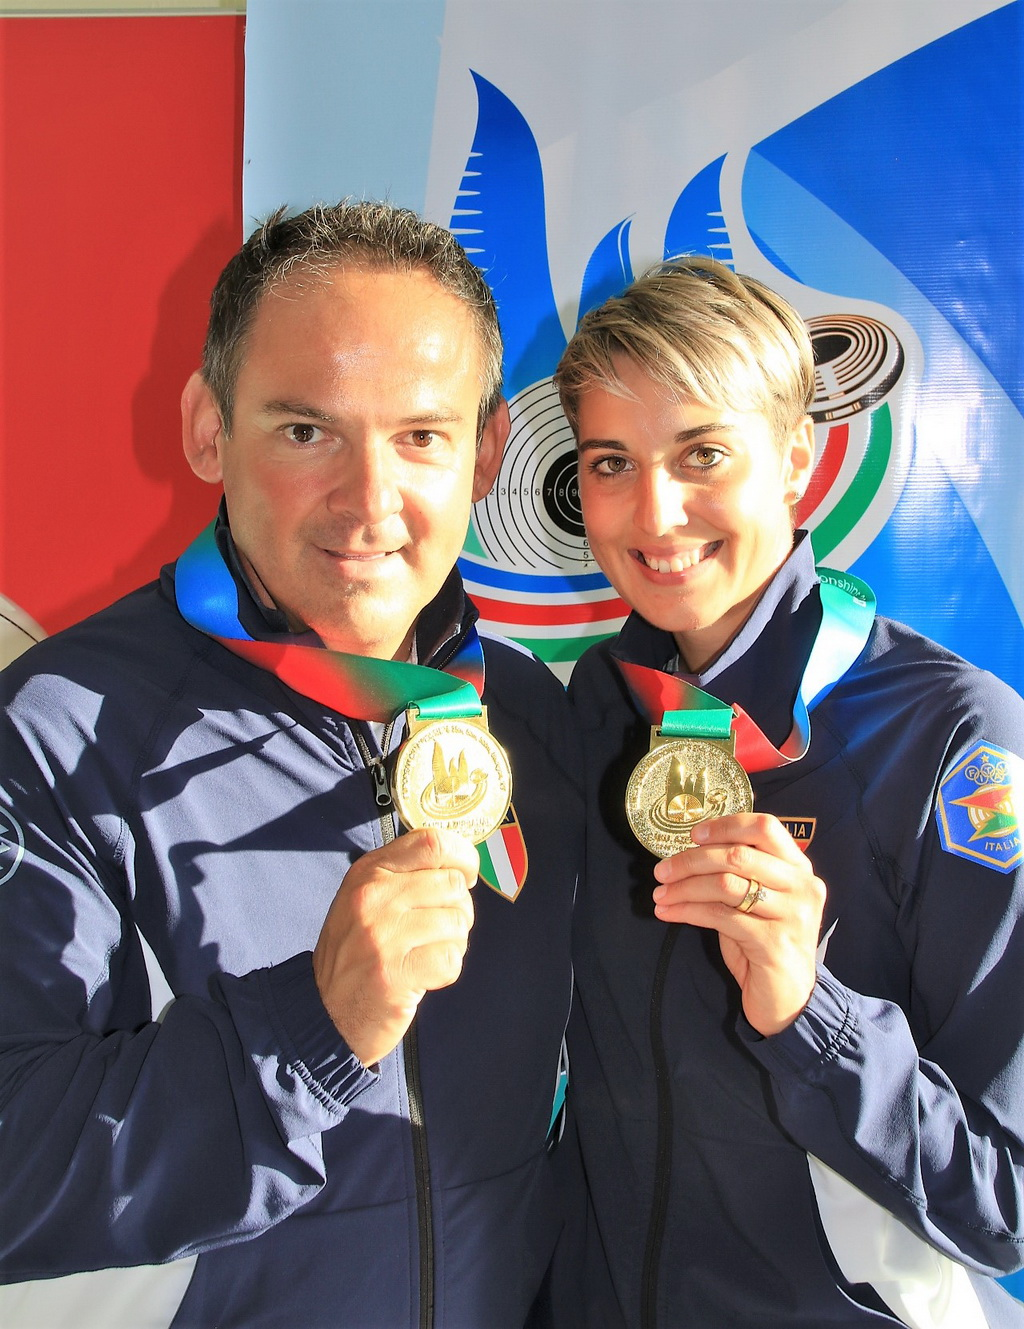 Italy dominated in the Trap Mixed Team Competition